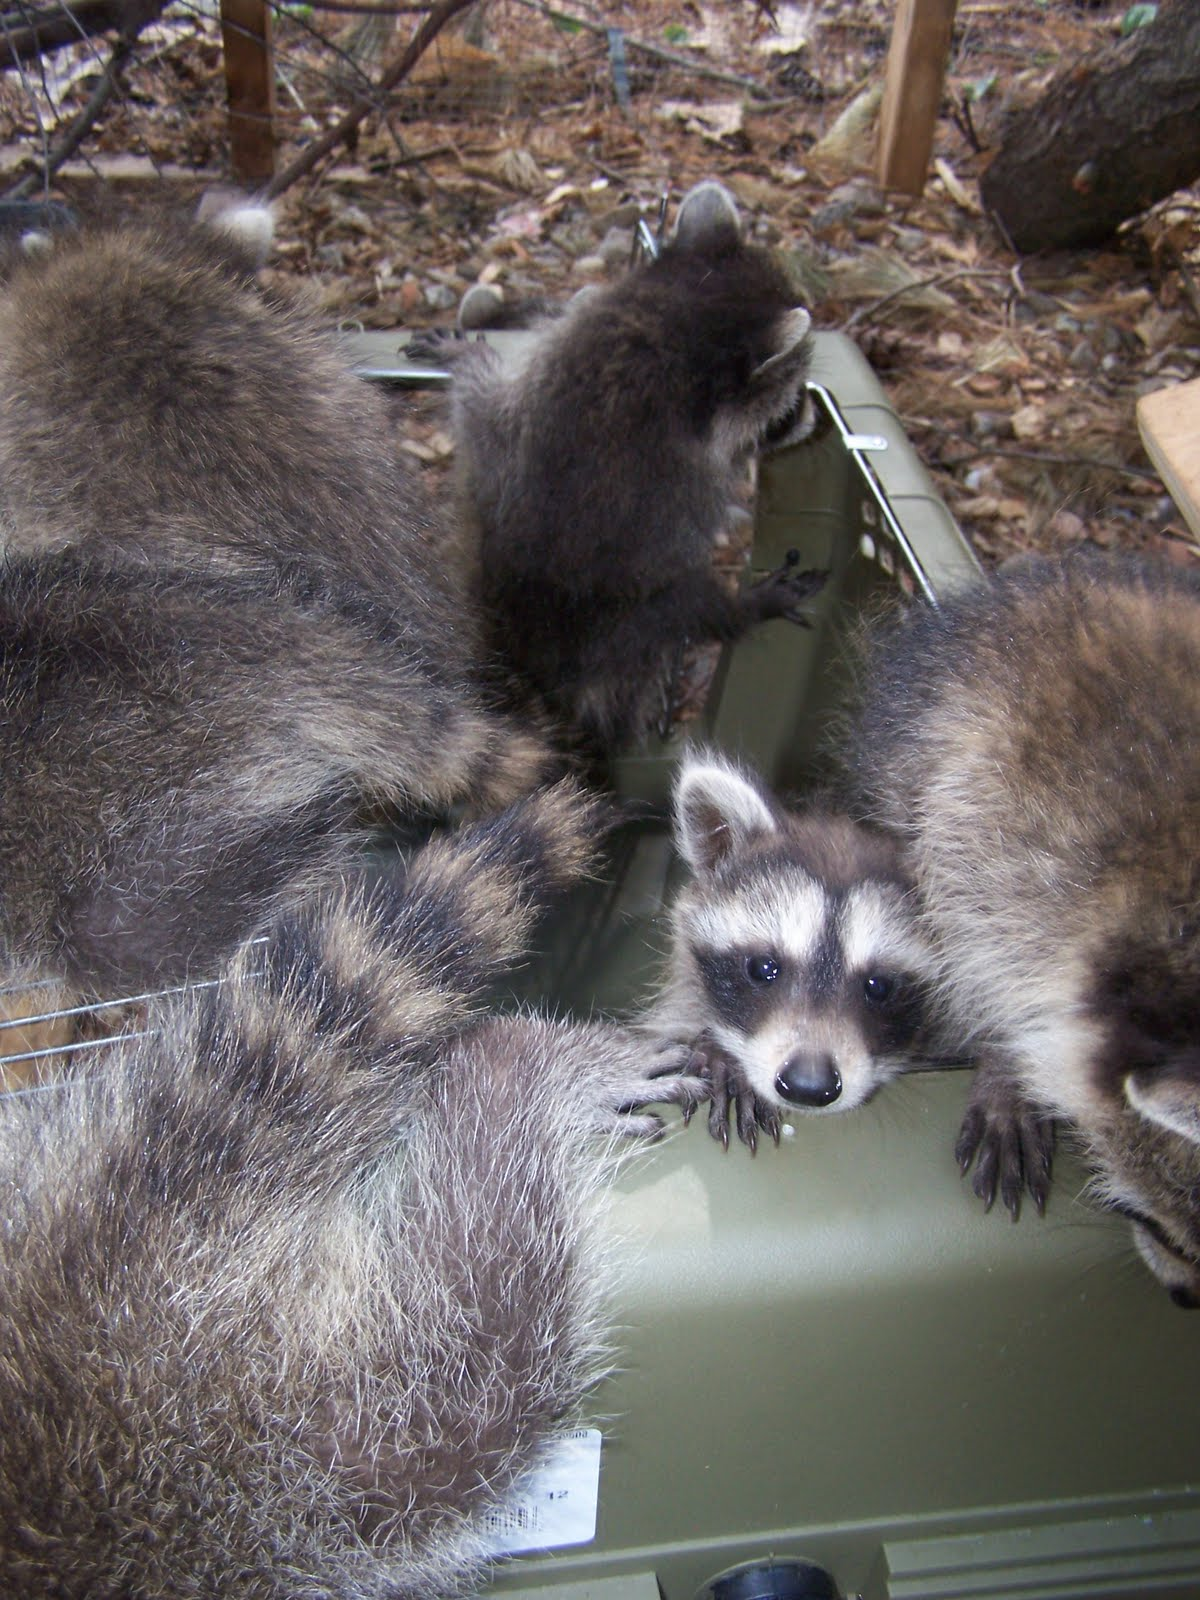 The Laughing Raccoon: The younger kids